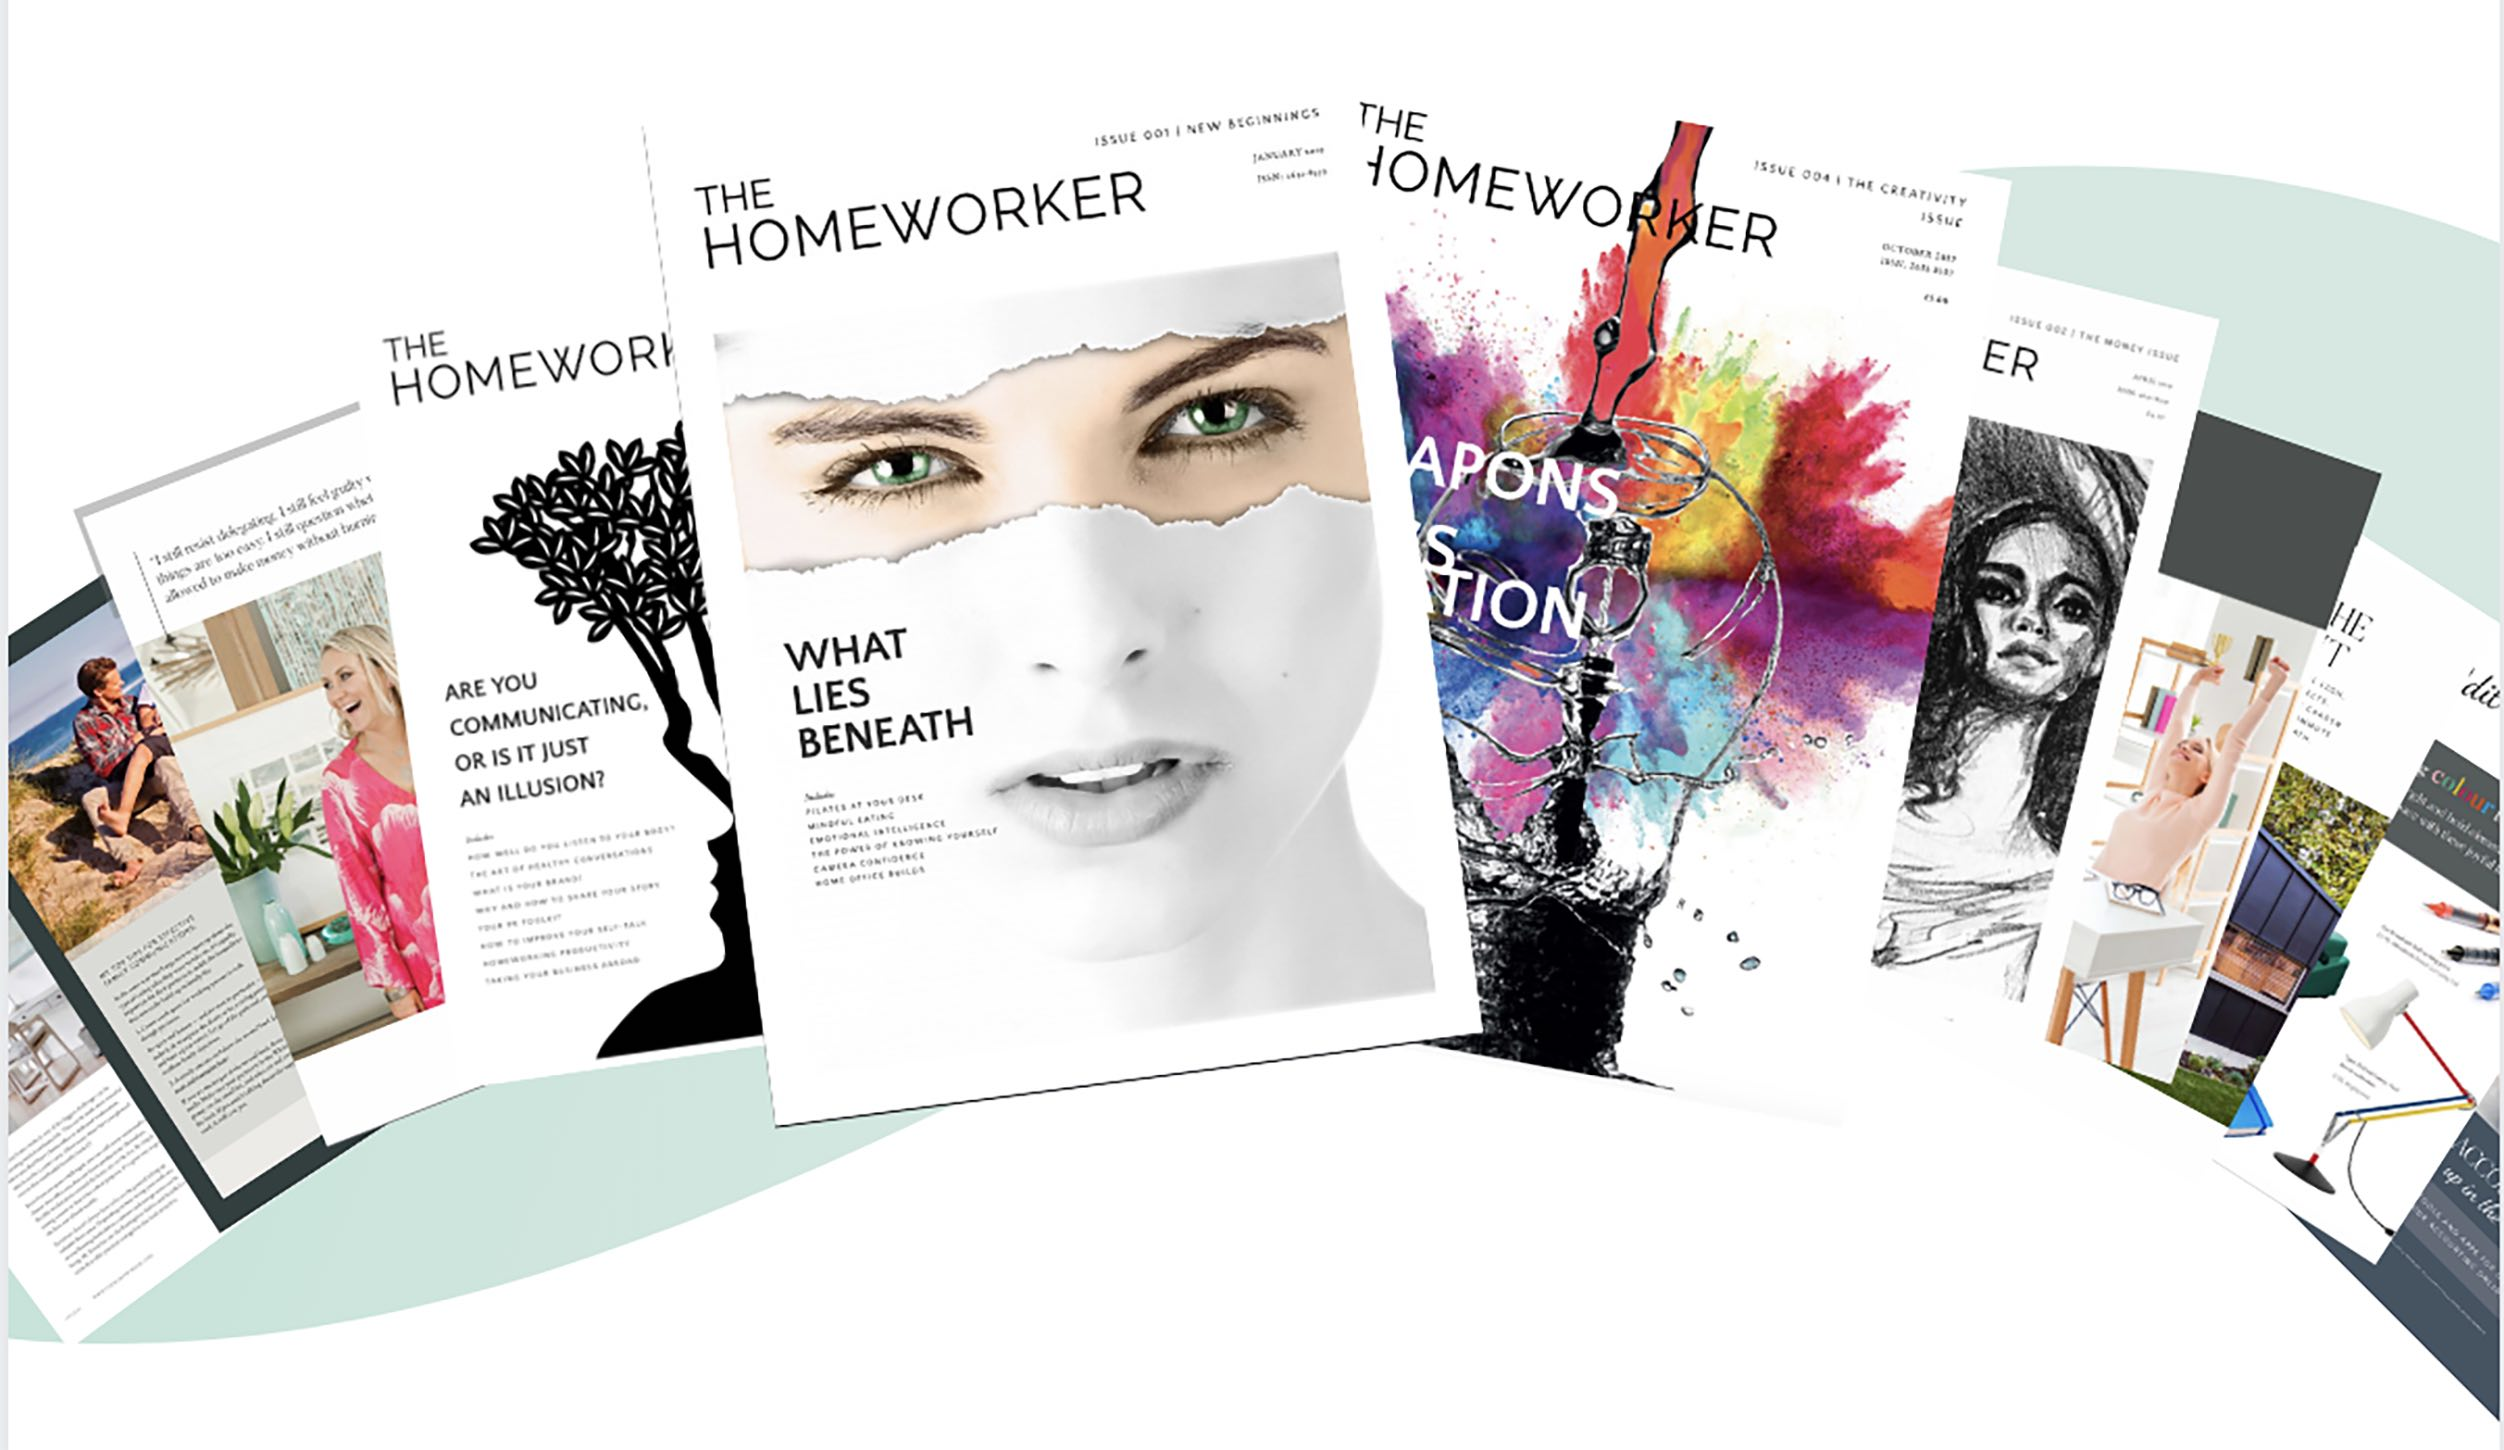 The Homeworker magazine covers issues 1,2,3,4